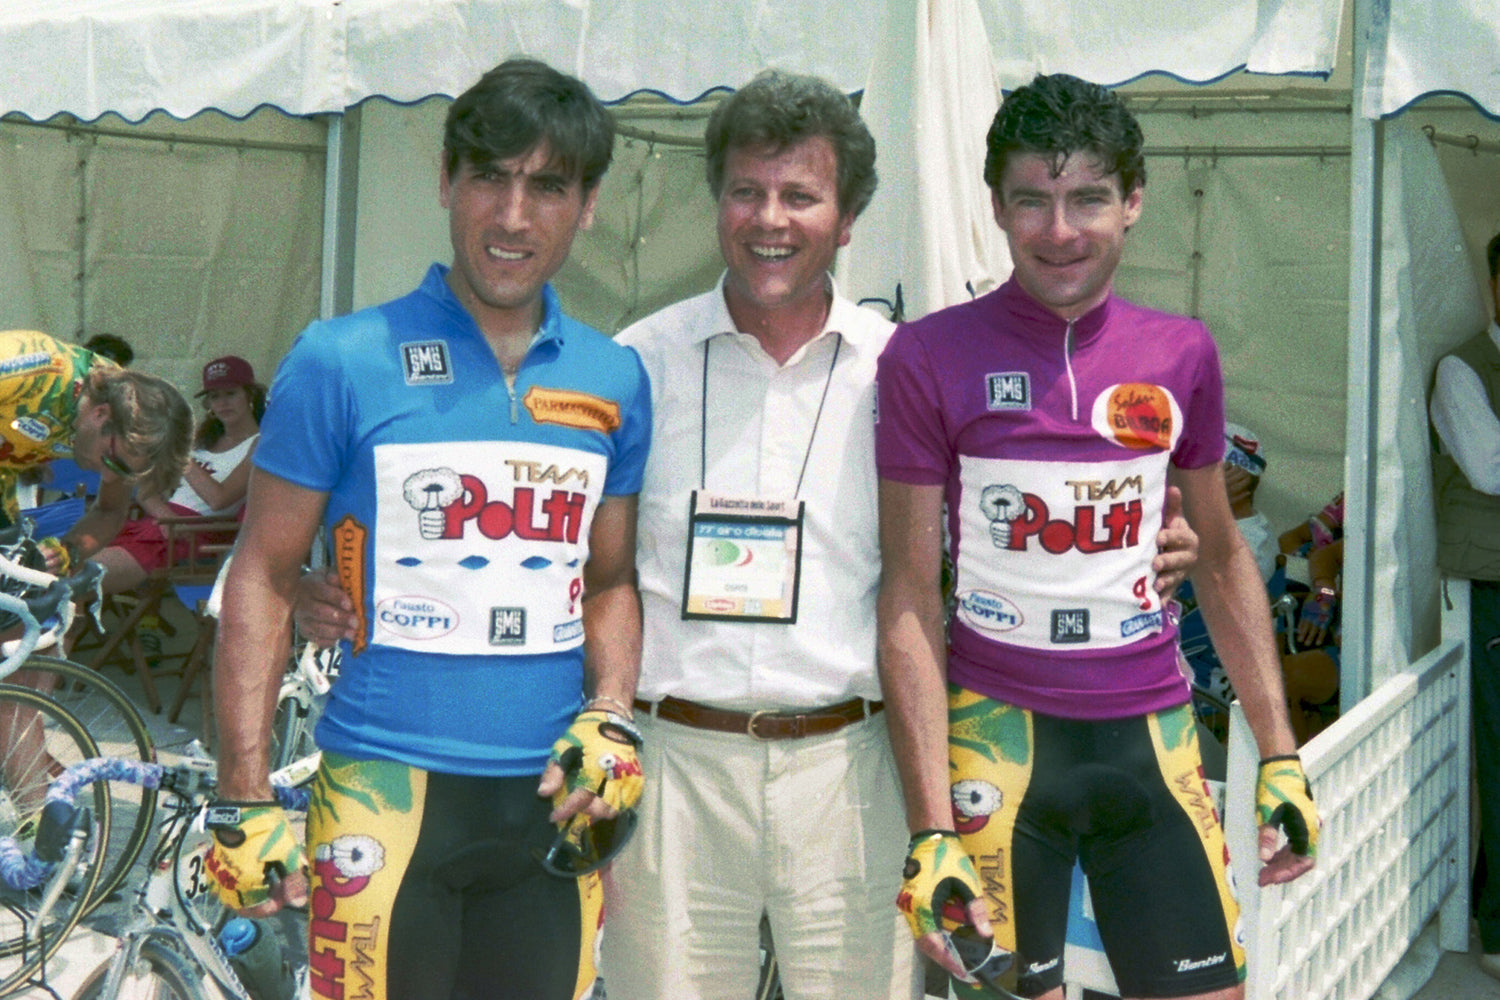 It was all smiles before stage 11 (Marostica - Bibione) of the 1994 Giro D'Italia.  If you have to ride all day, every day in the Polti jersey, it's little wonder why Gianni Bugno and Djamolidine Abduzhaparov look so happy to swap their standard team jersey for the maglia azzurro e maglia ciclamino!  Photo: Fotoreporter Sirotti.